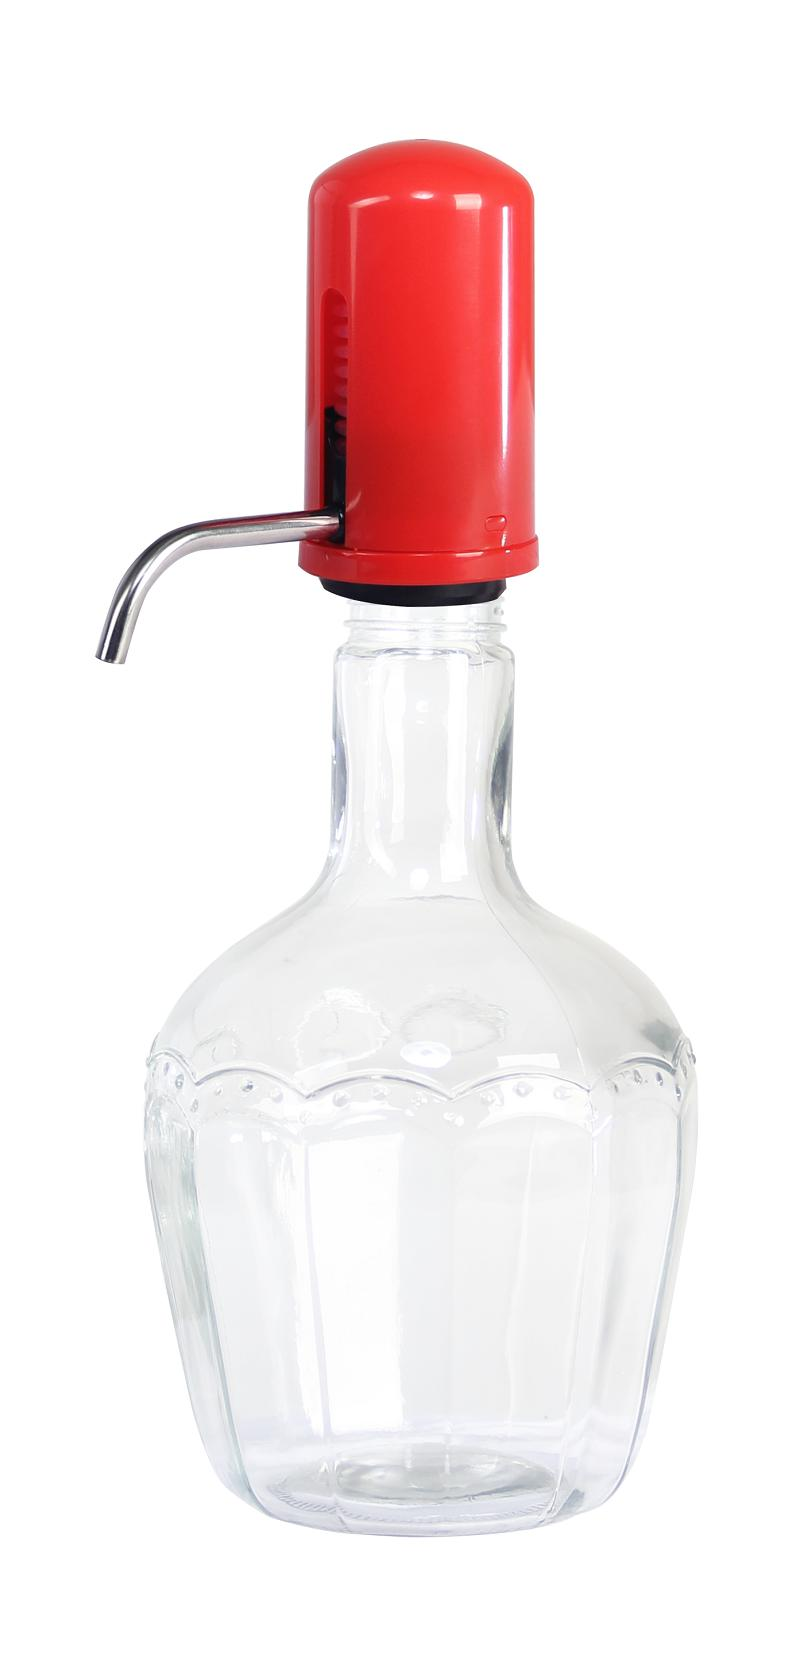 KOKIKU Glass Dispenser 2 lt / dispenser botol kaca KOGD A2